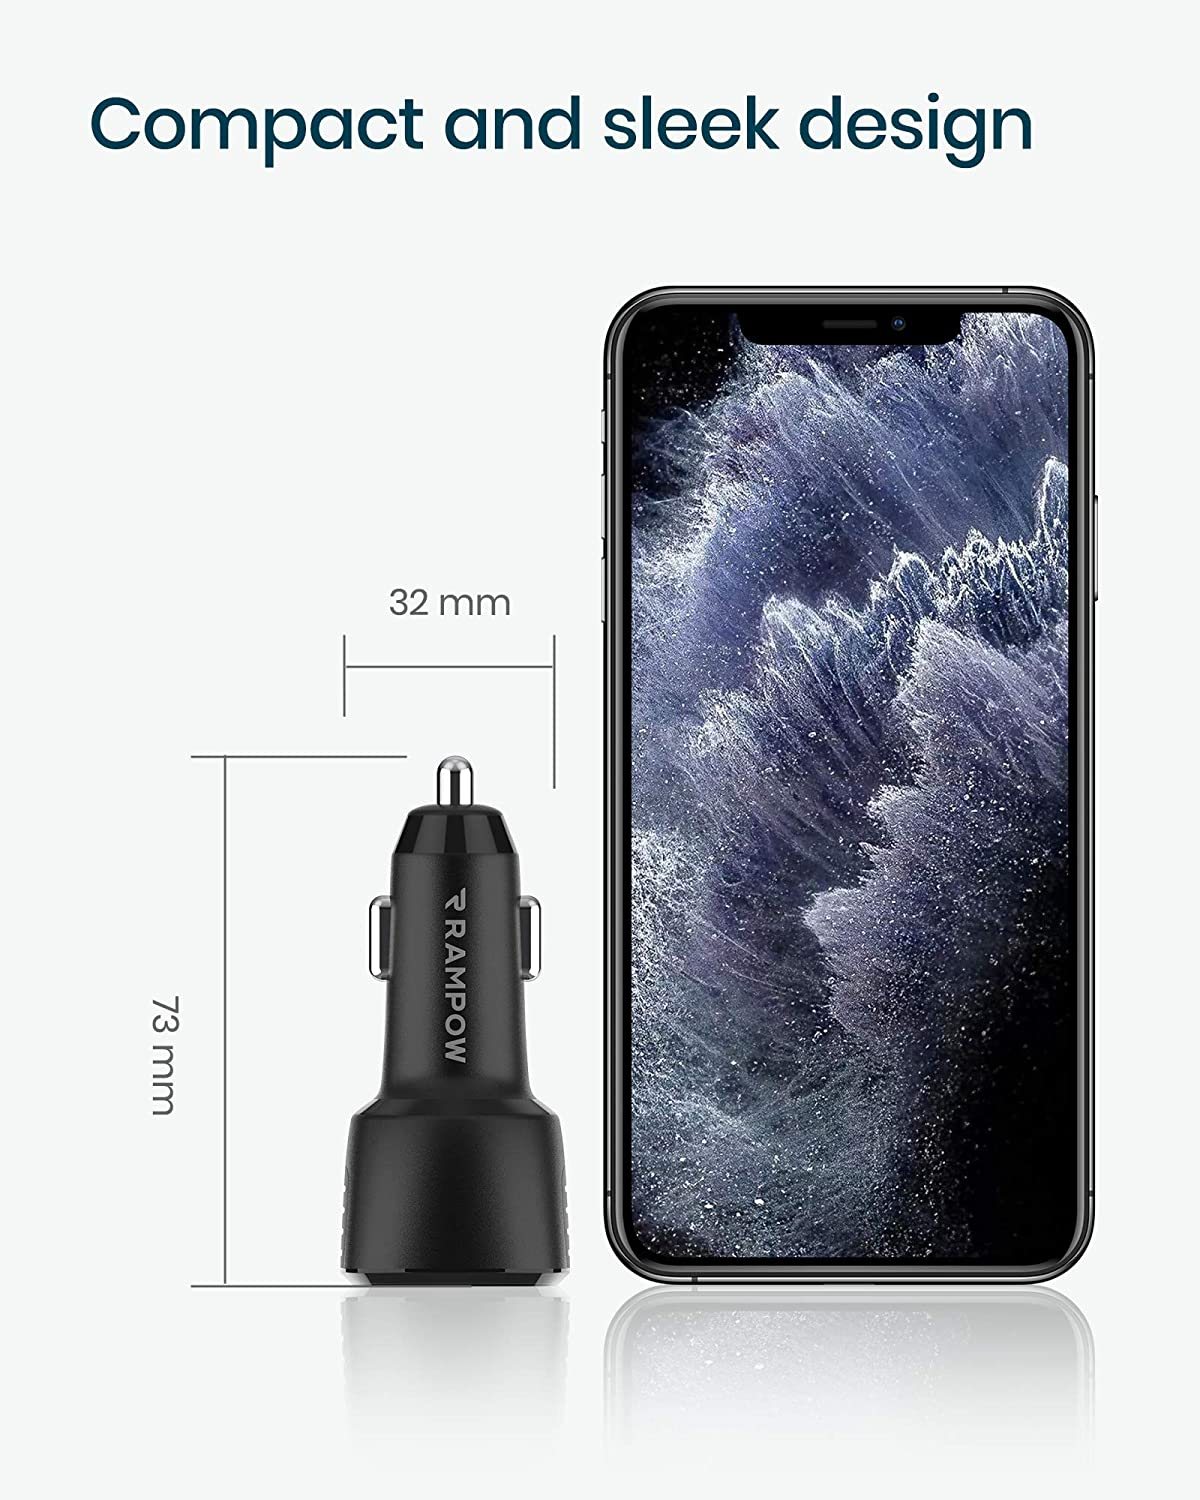 RAMPOW 37.5W USB C Car Charger USB Car Charger for iPhone 11//XS Max//XR//X//8//7 Samsung S10//S9//S8 and More 6A Dual Port Car Charger with 18W Power Delivery 3.0 and 19.5W Quick Charge 3.0 Black